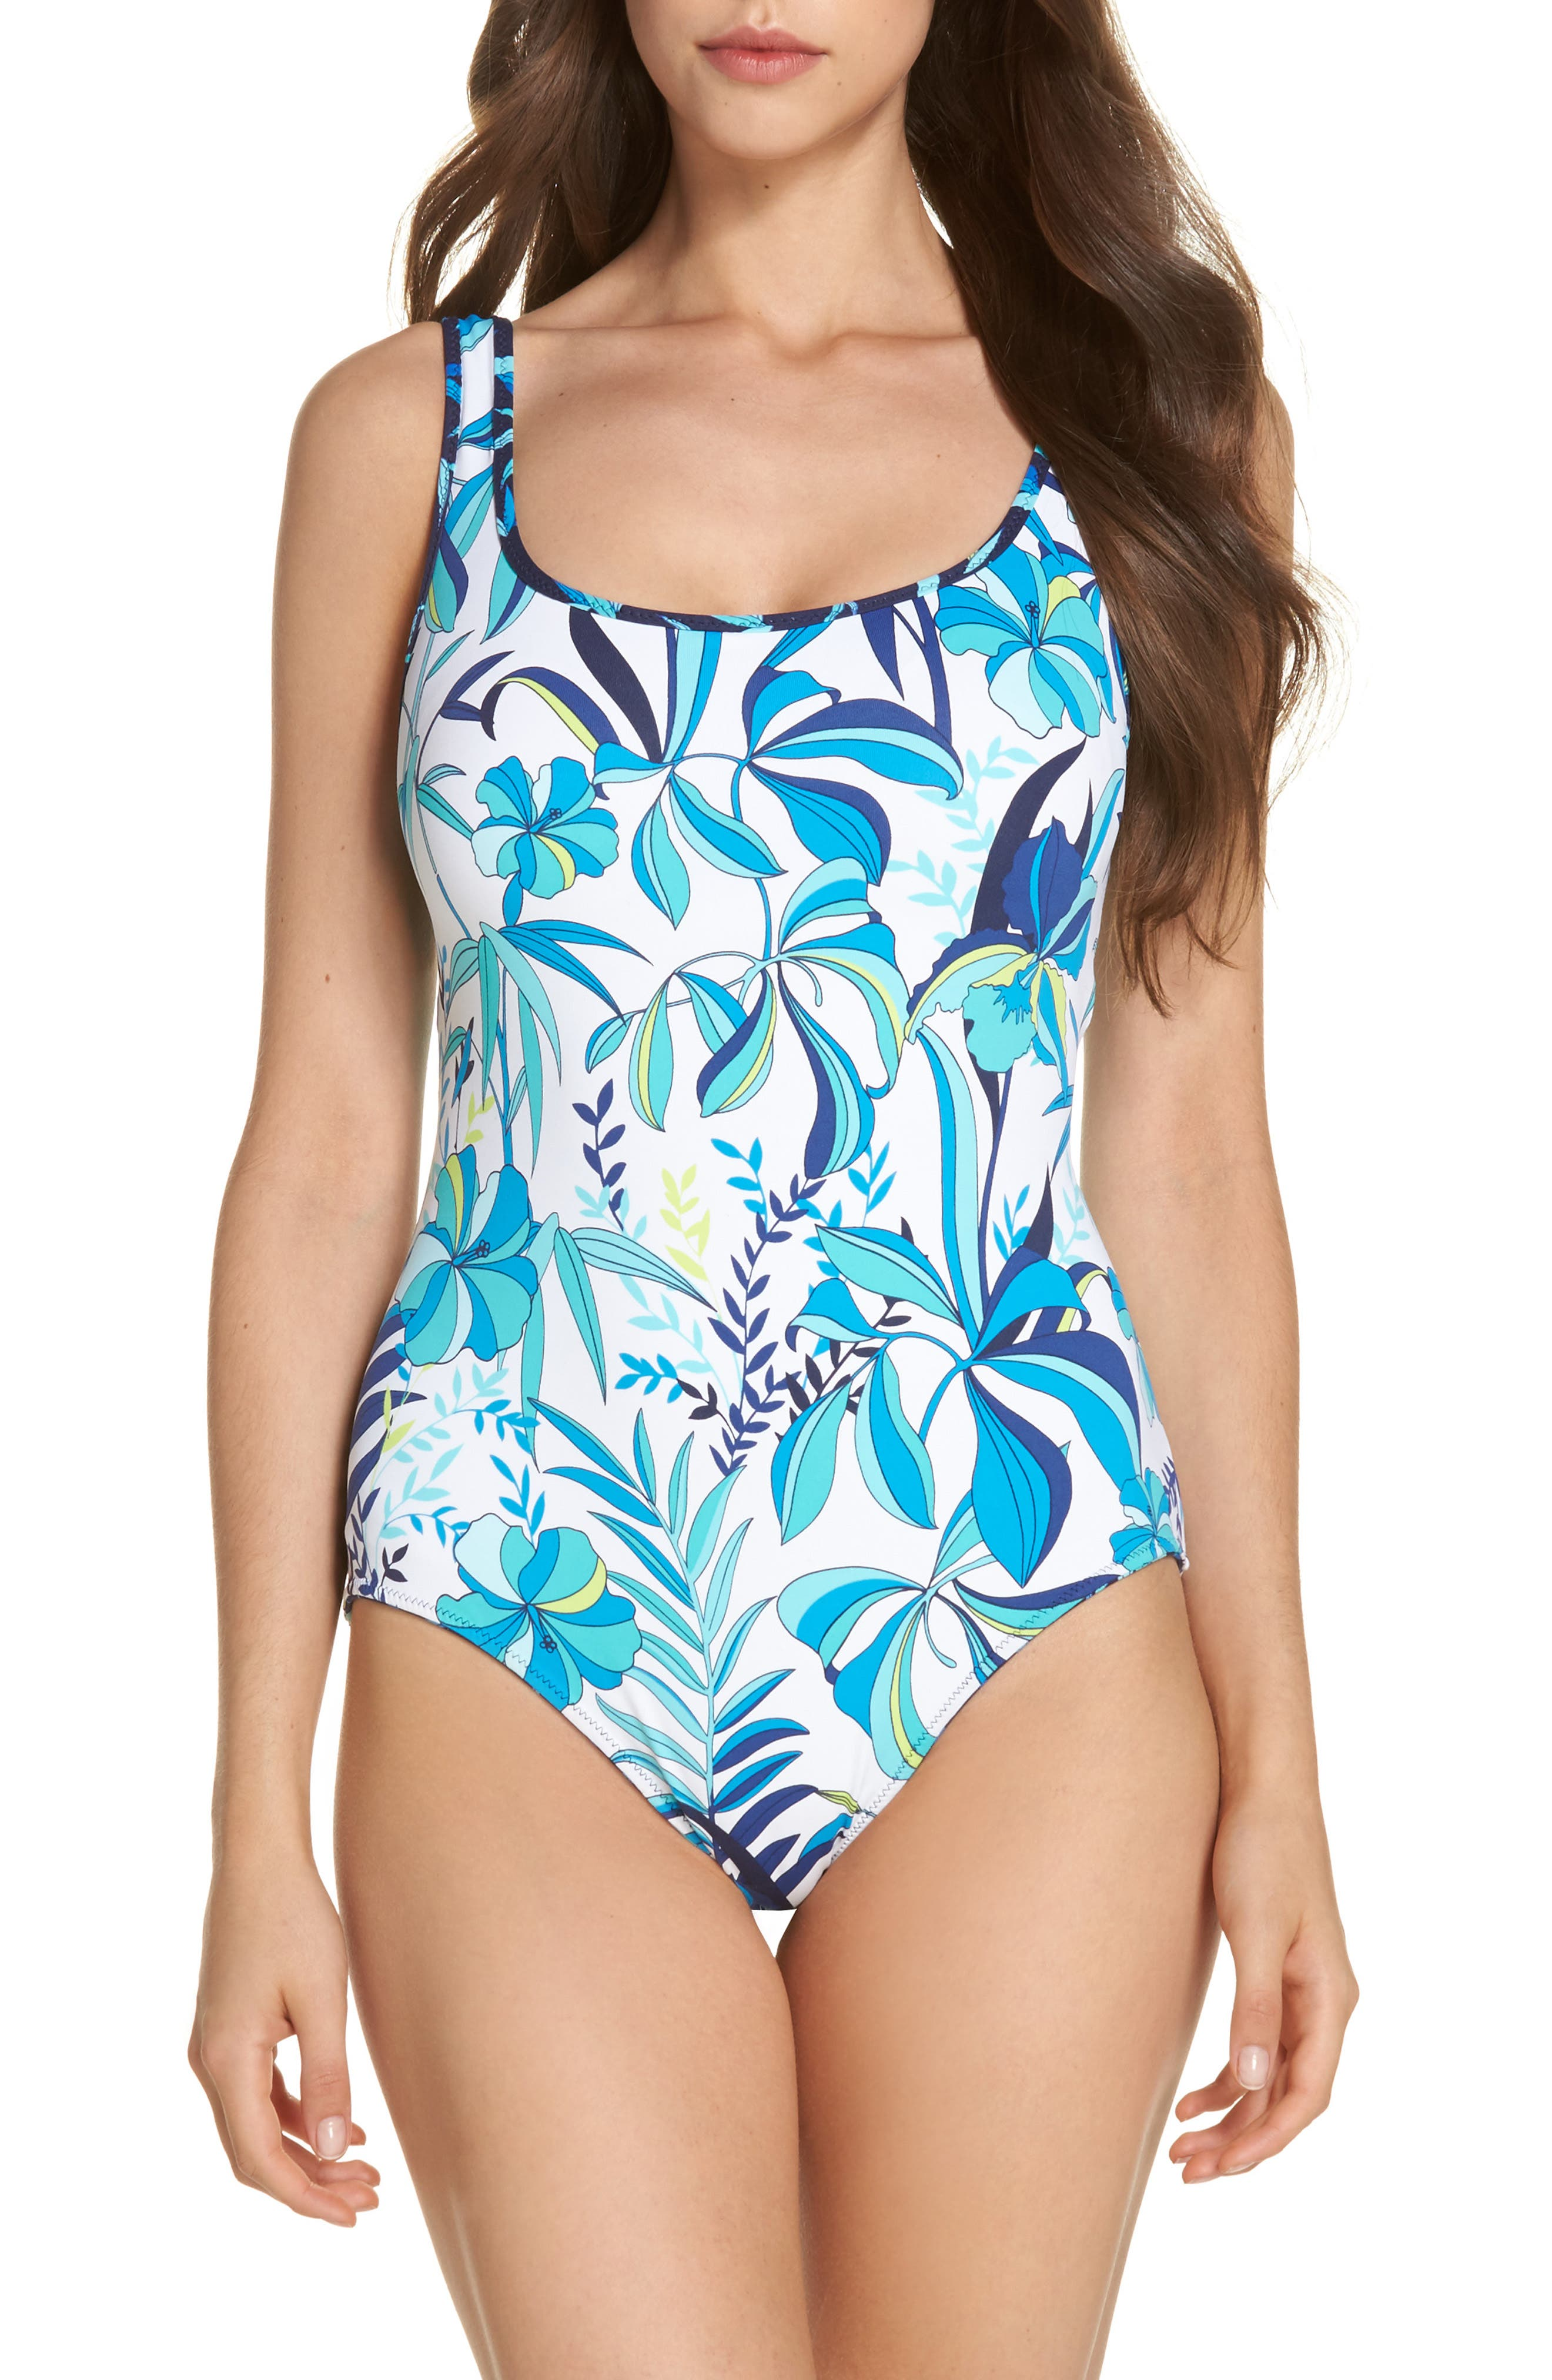 Tropical Swirl Reversible One-Piece Swimsuit,                             Alternate thumbnail 2, color,                             400